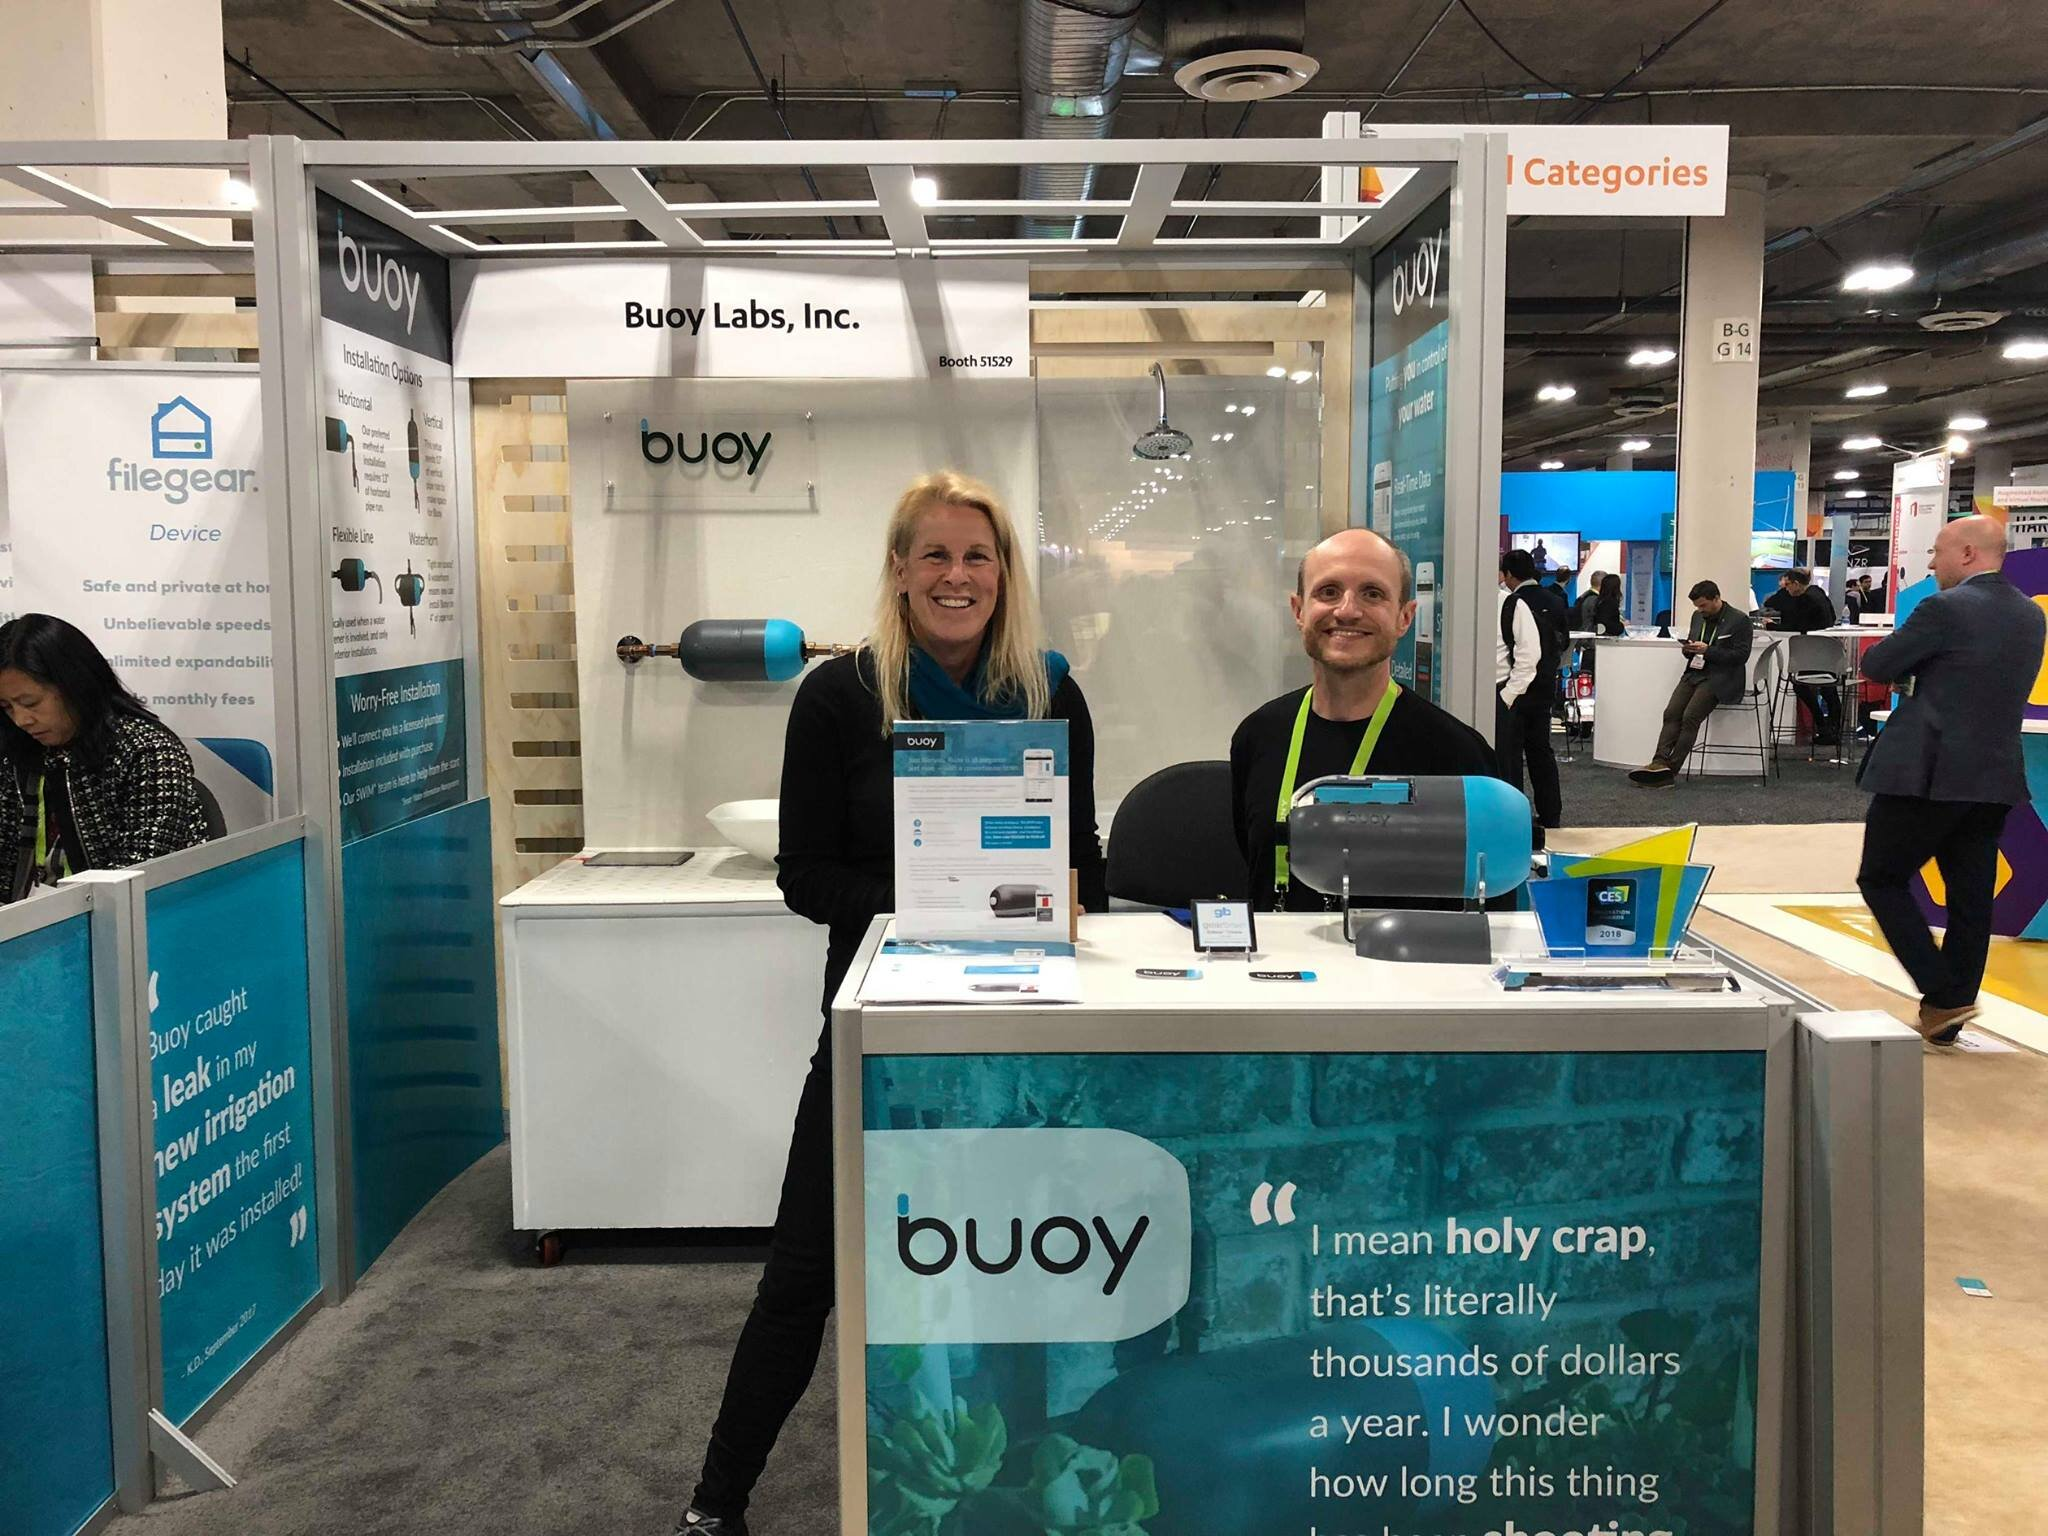 Buoy at CES 2018